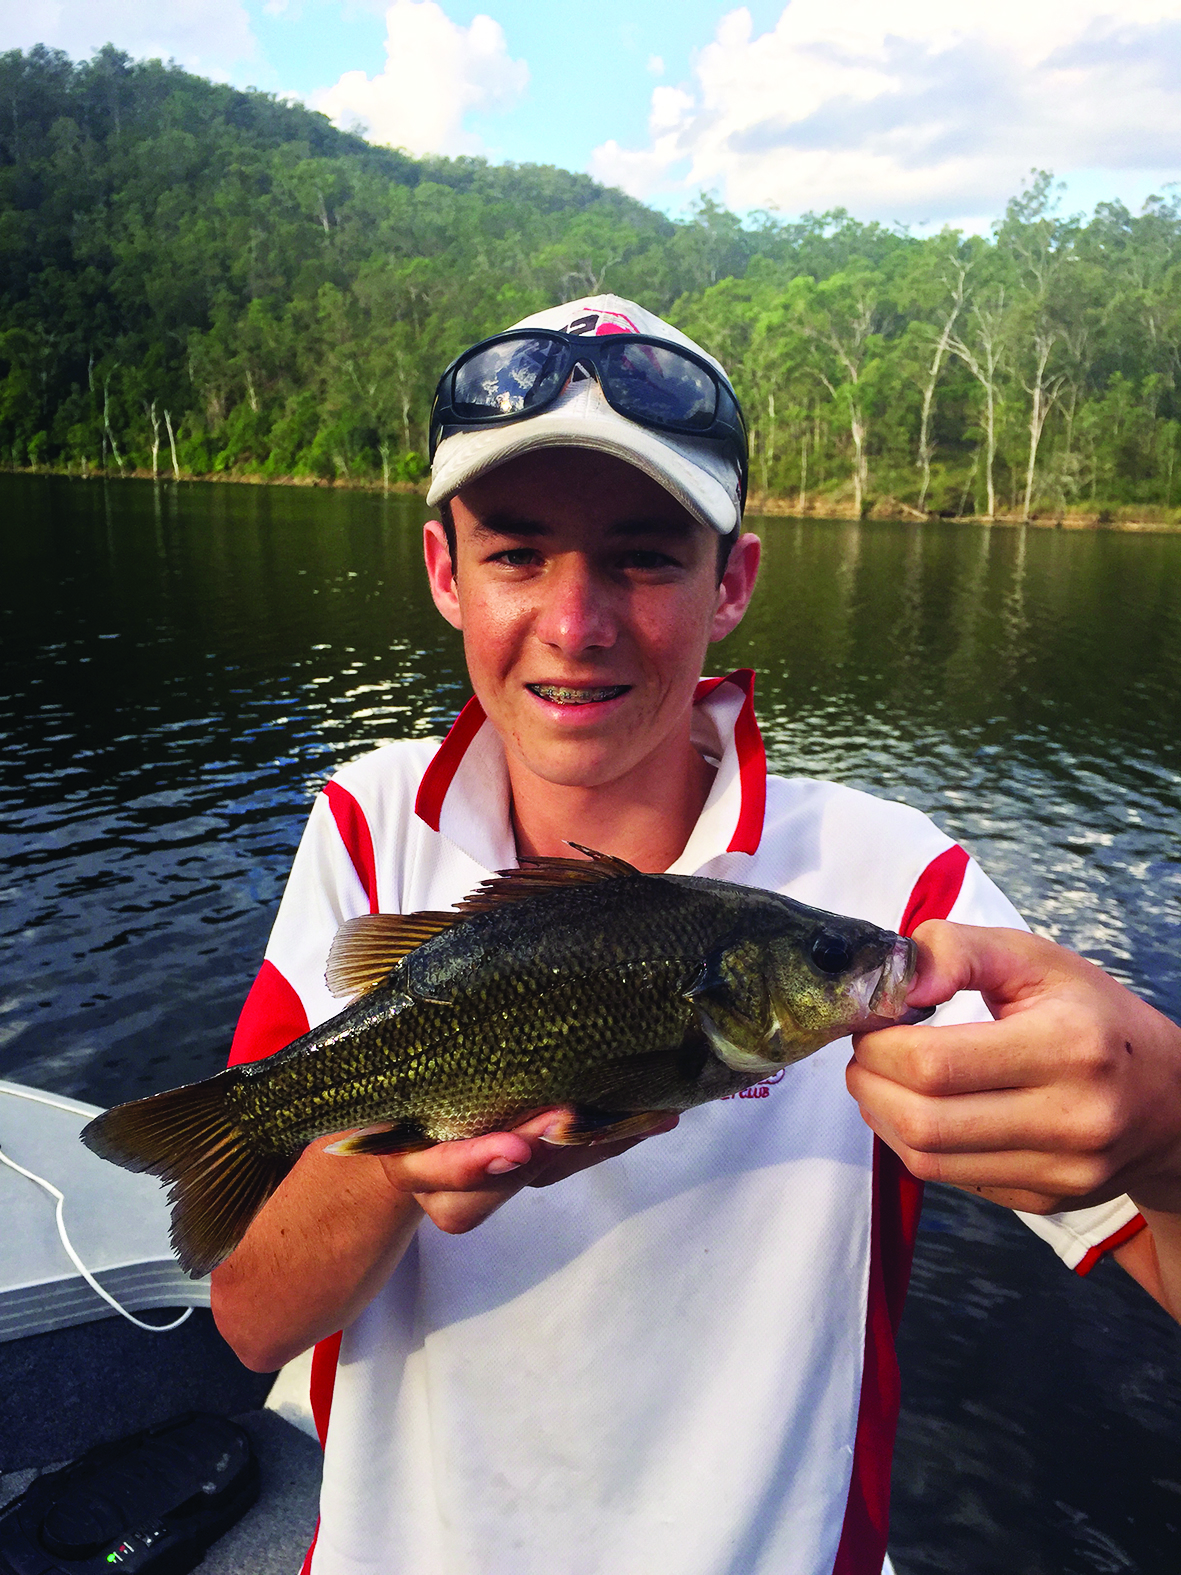 Ryan with a 33cm bass hooked on a brown curly tail from Softplasticsdude.